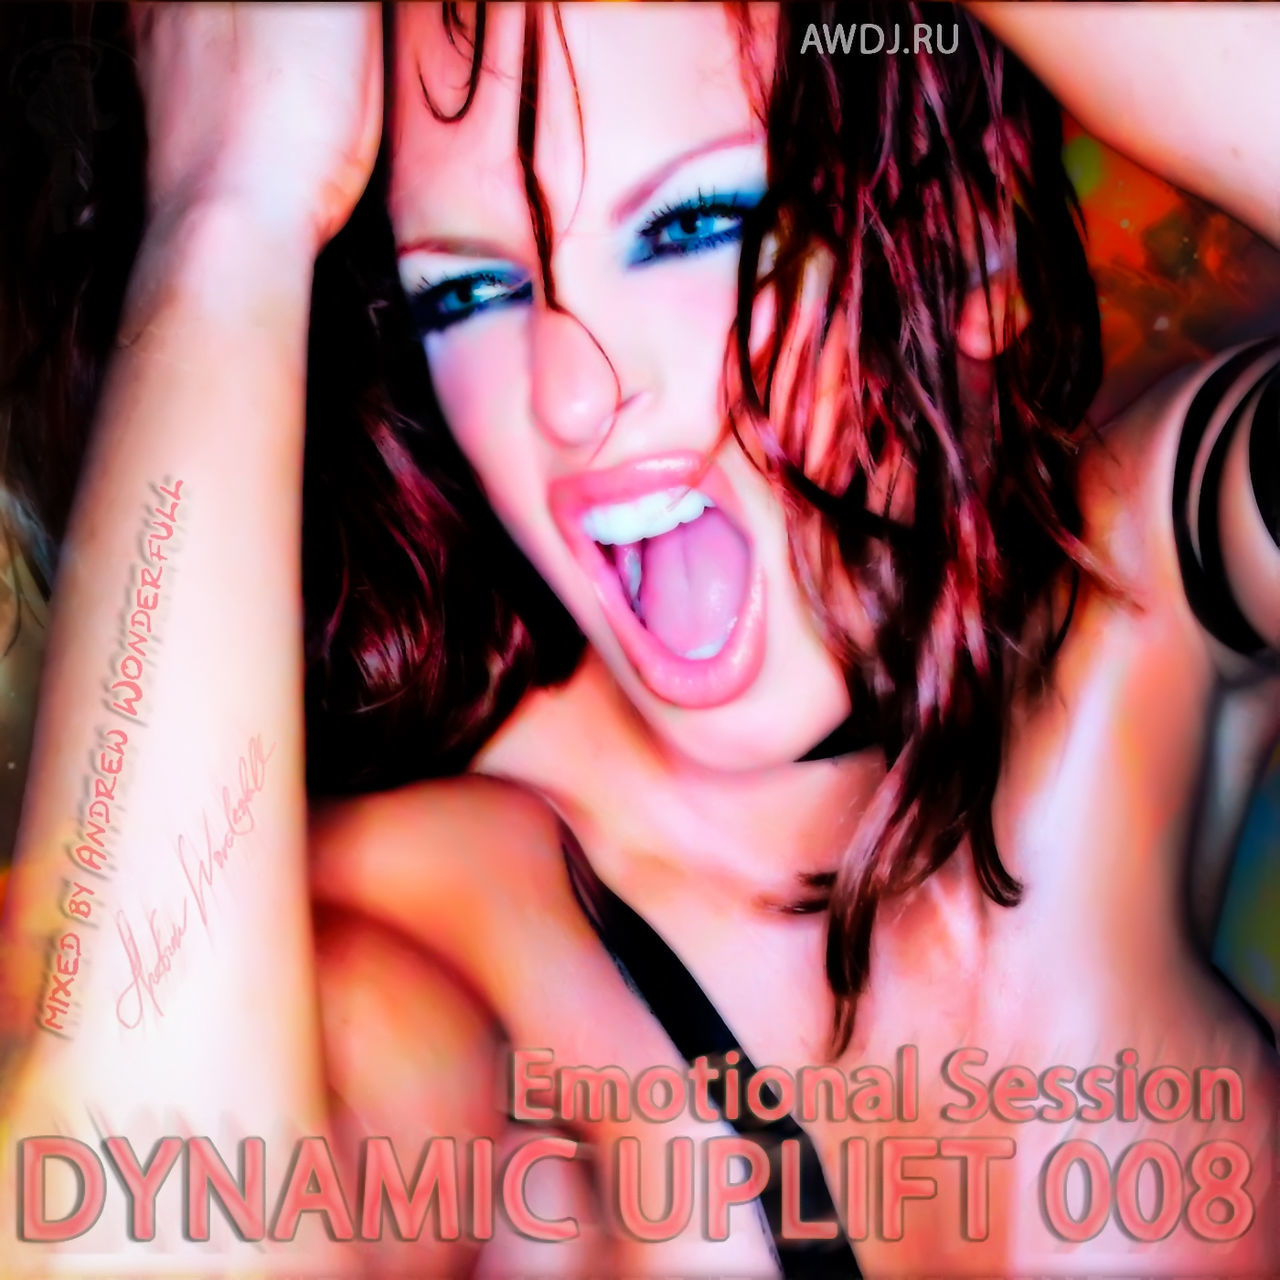 http://awdj.ru/category/mixes/dynamic-uplift/ Awmusicproduction AndrewWonderfull Awdj Awesome Awmusic Awtrance Dynamic Uplift Dynamicuplift Music Trance Uplifting Trance Vocal Trance